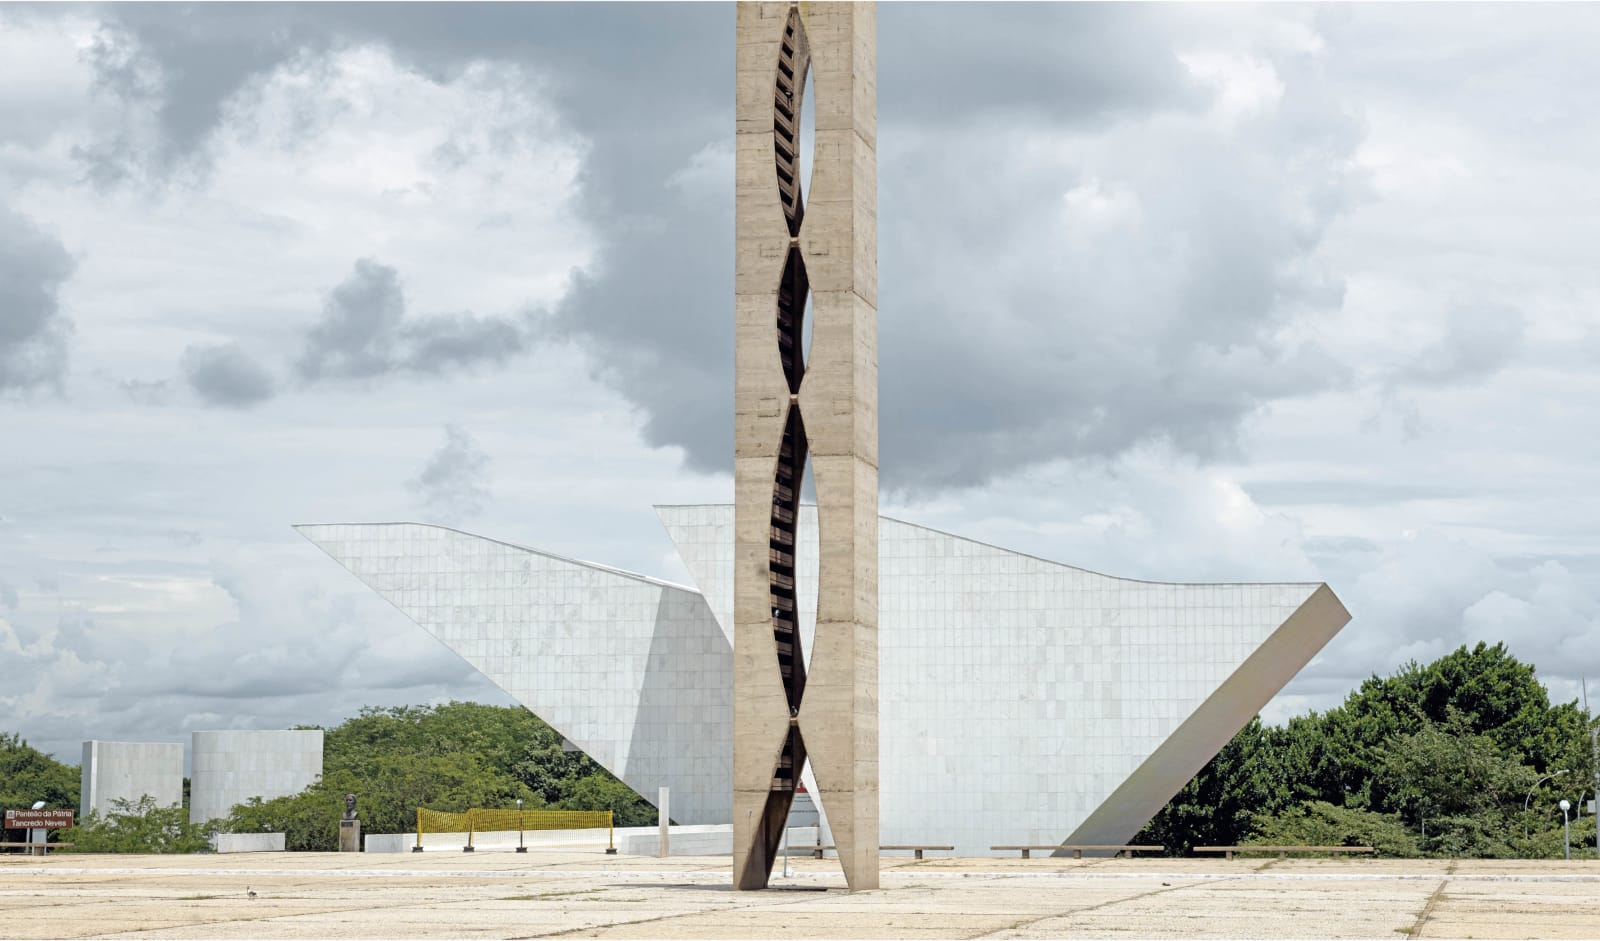 Vincent Fournier, Tancredo Neves Pantheon of the Fatherland and Freedom, Plaza of the Three Powers, Brasília, 2012, Plaza of the Three Powers, Brasília, 2012